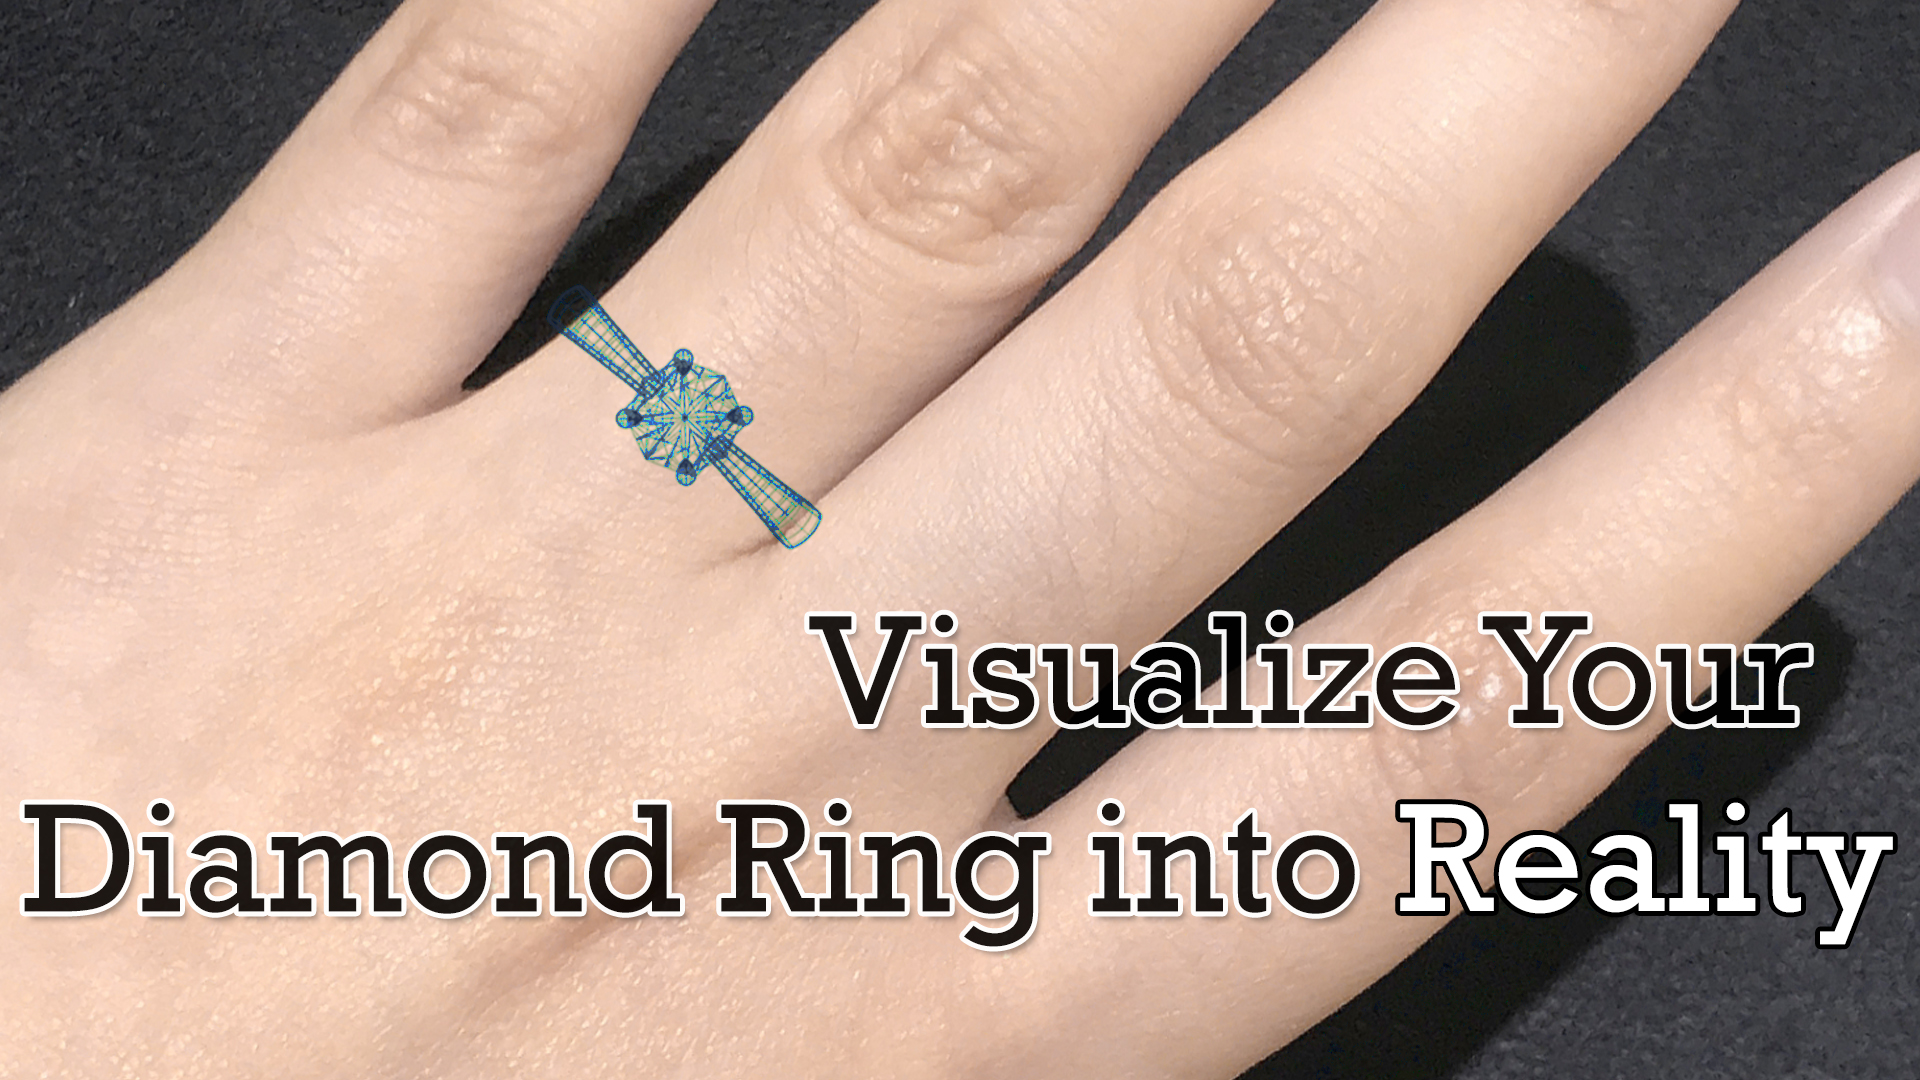 Visualize Your Diamond Ring into Reality